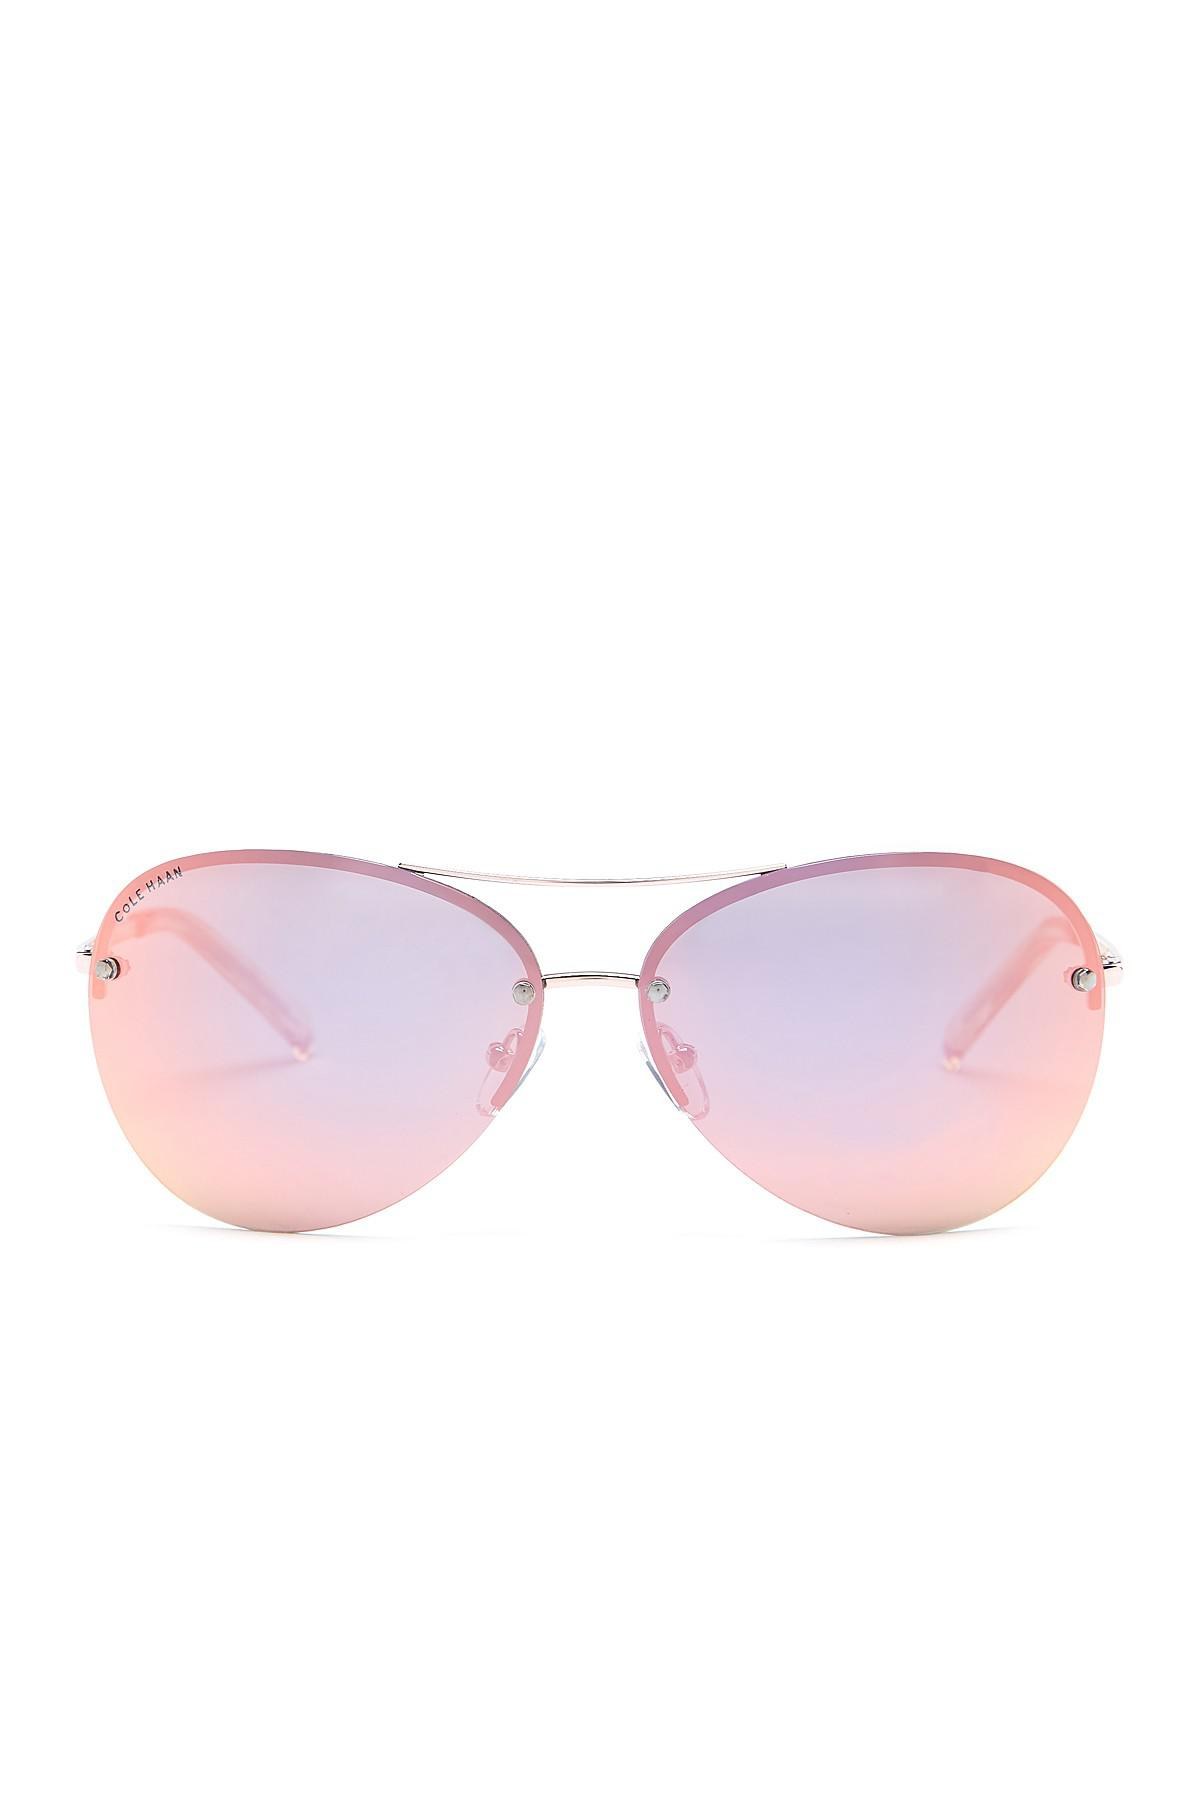 dd0e55da9ef0 Cole Haan Women's Wrap Aviator Polarized Sunglasses in Pink - Lyst